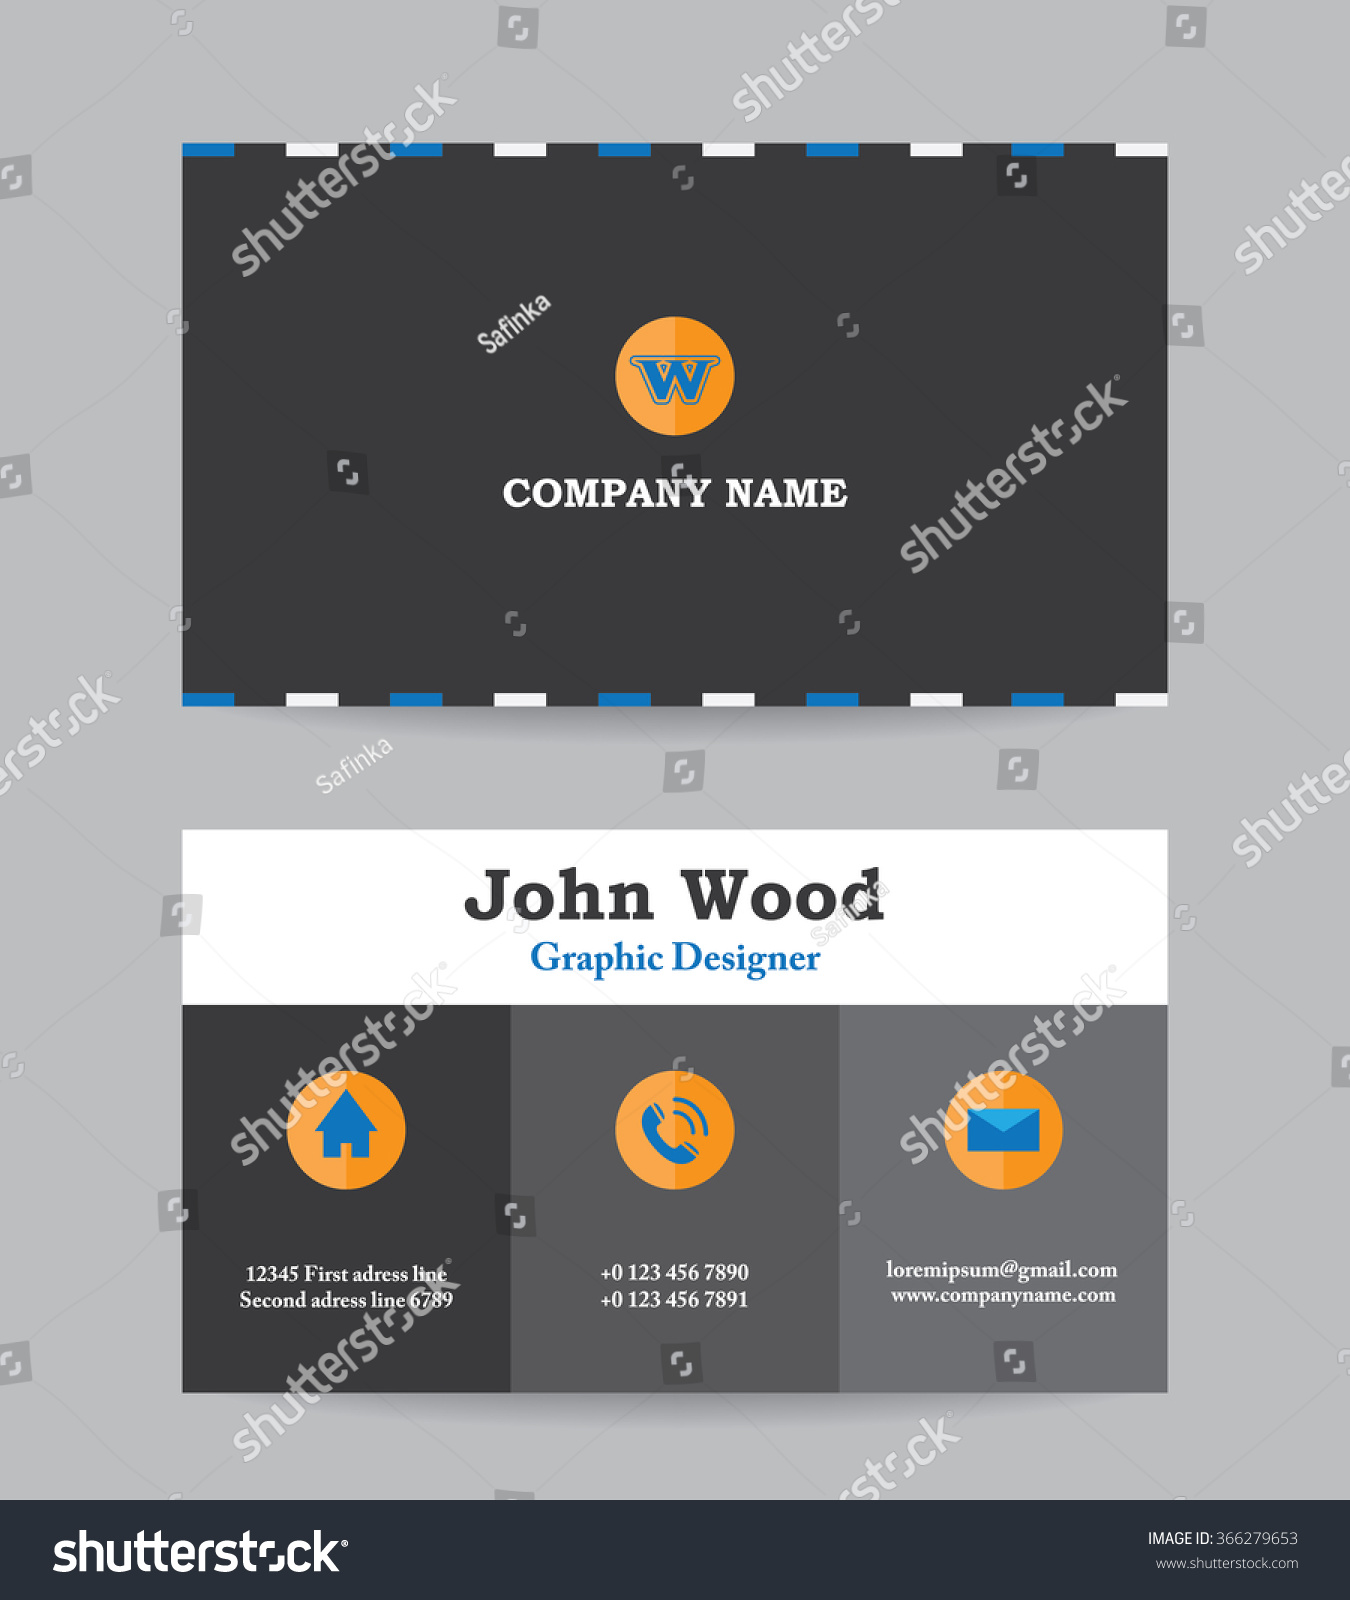 business card business card template business のベクター画像素材